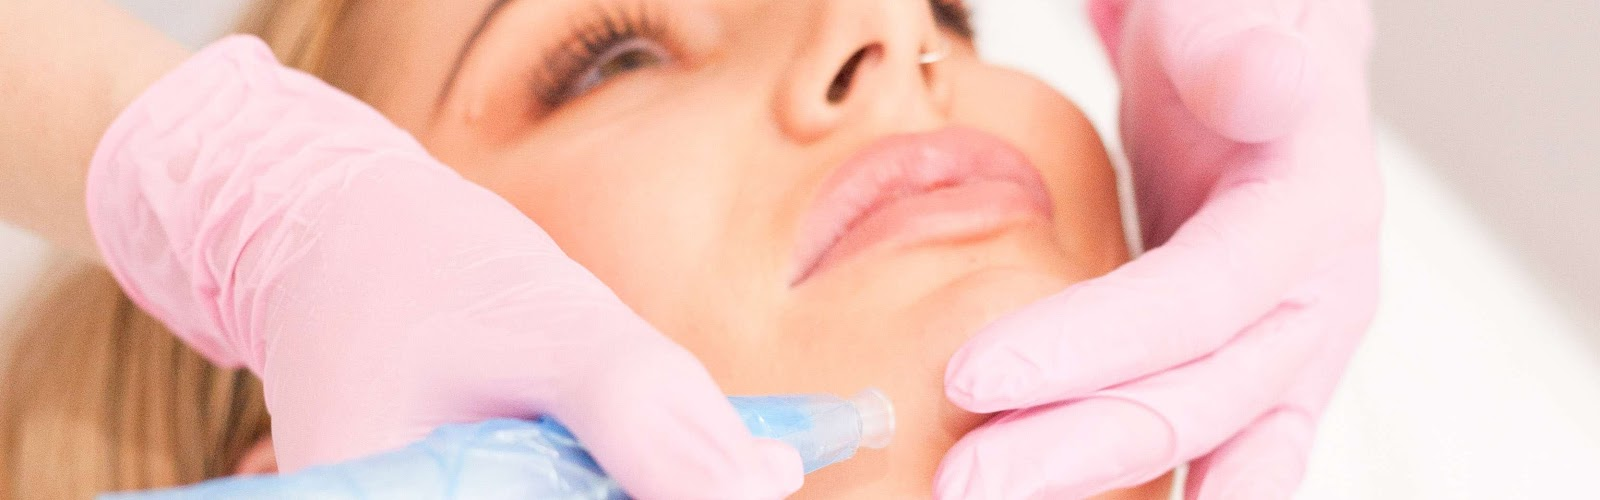 Dermatude Microneedling Treatment